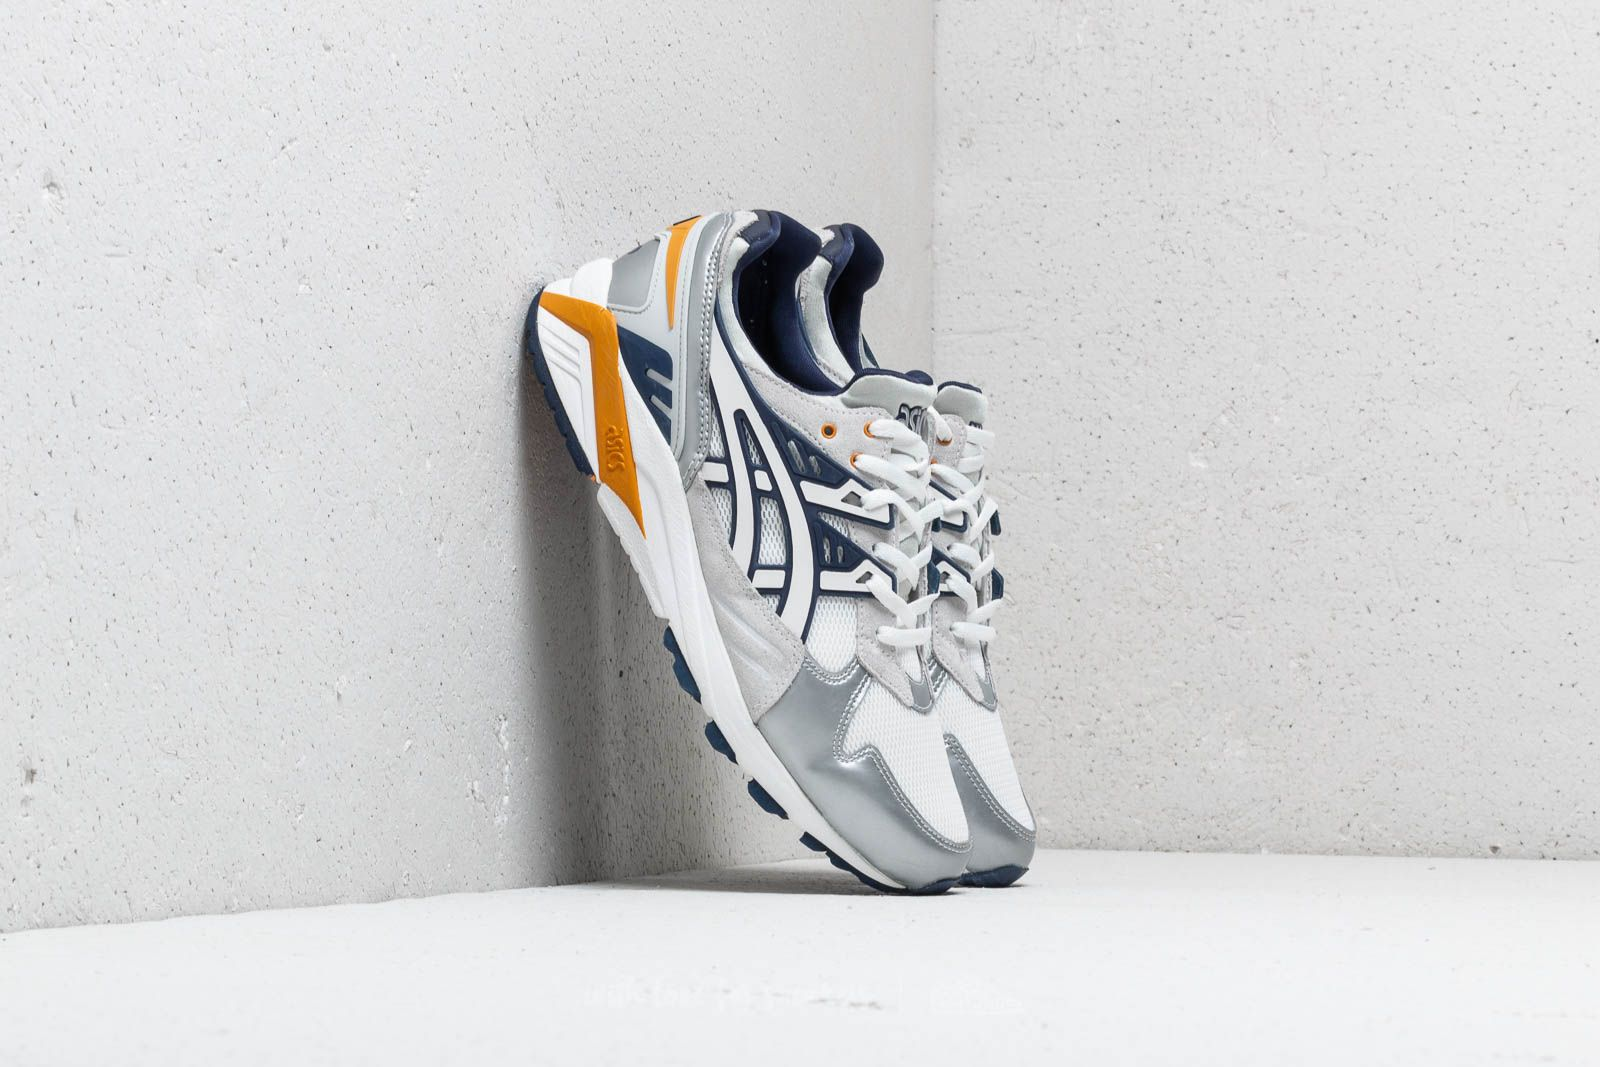 Asics x Naked Gel-Kayano Trainer